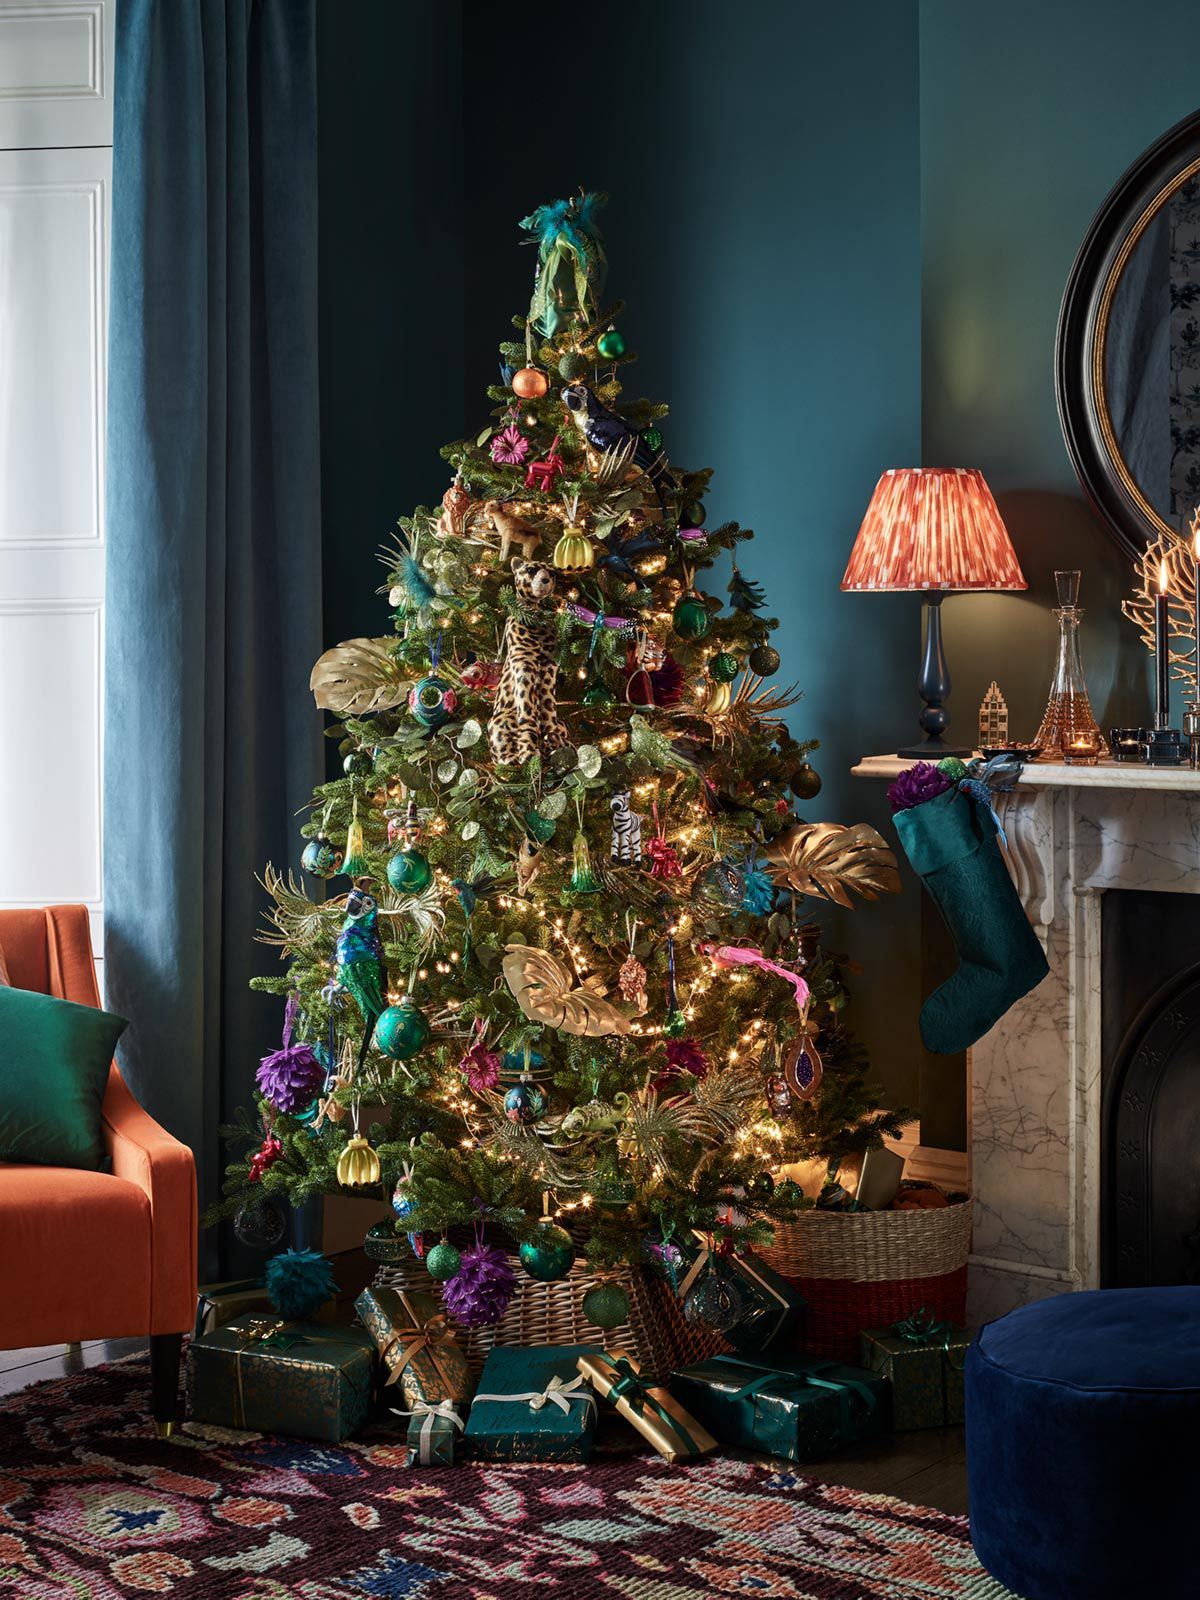 Beautiful Christmas tree decorated with colourful, Post-Impressionism inspired baubles and ornaments